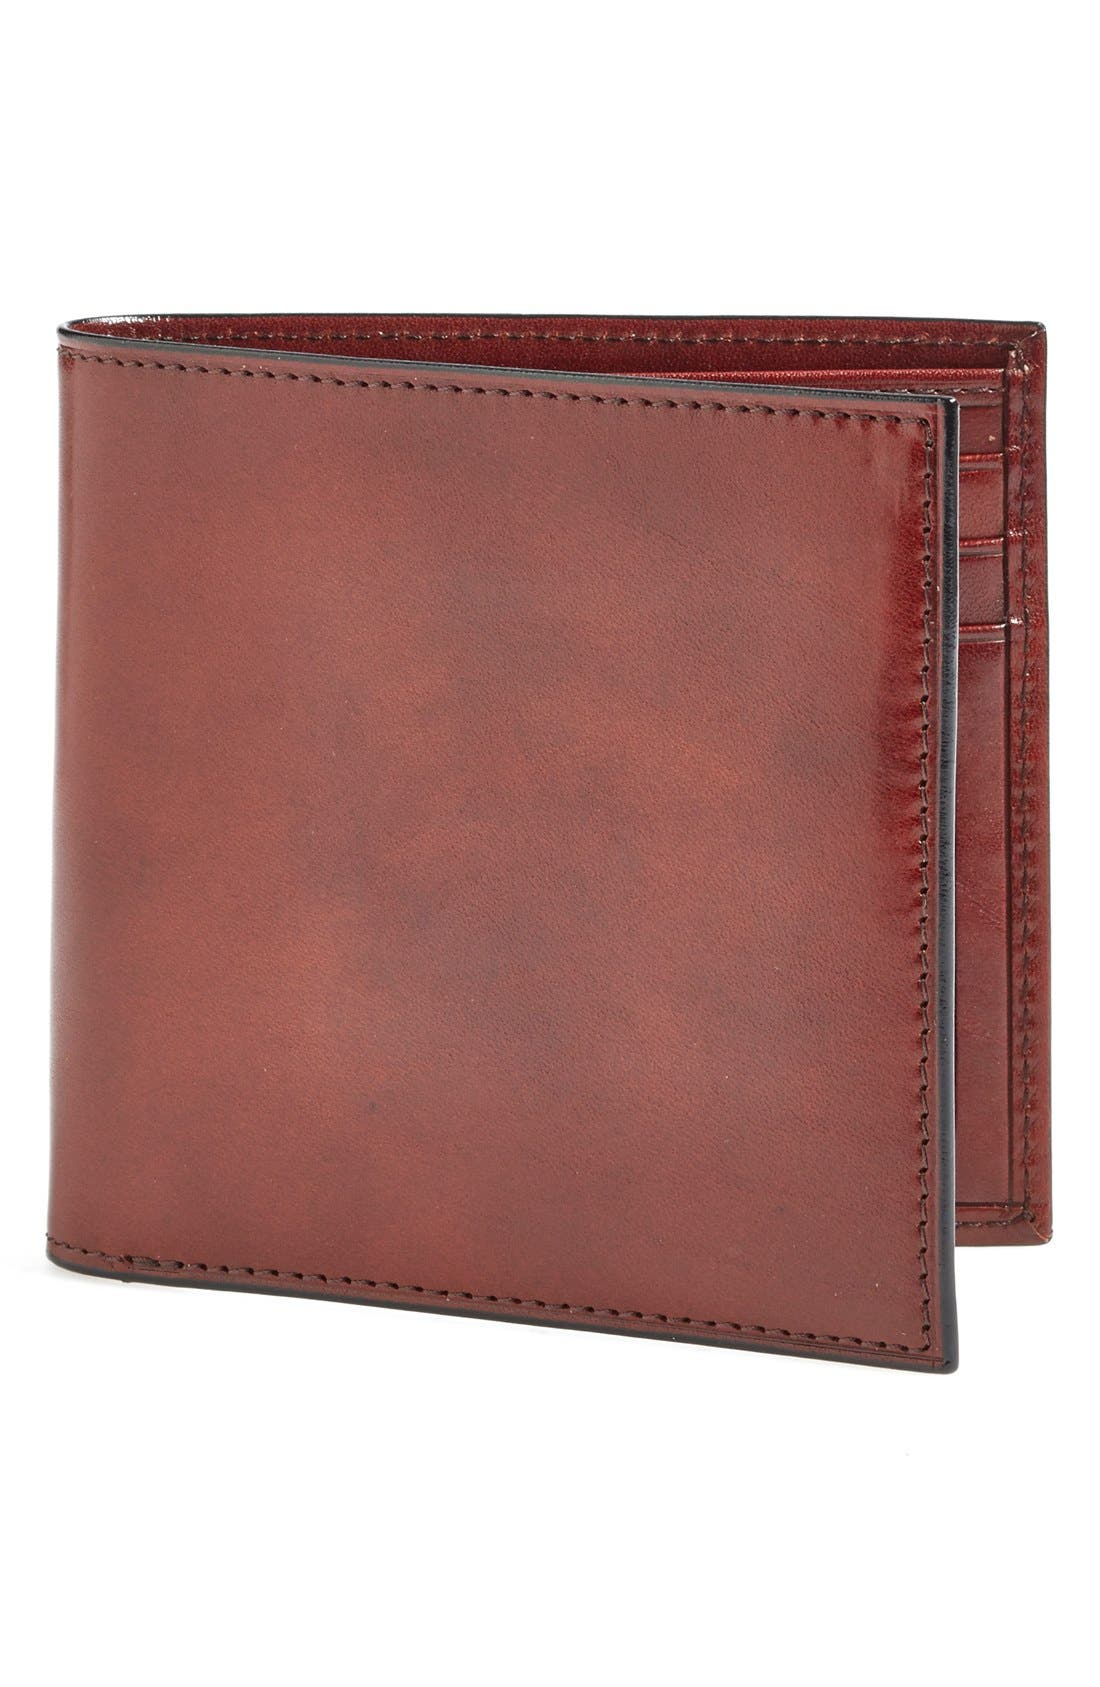 Alternate Image 1 Selected - Bosca 'Old Leather' Bifold Wallet